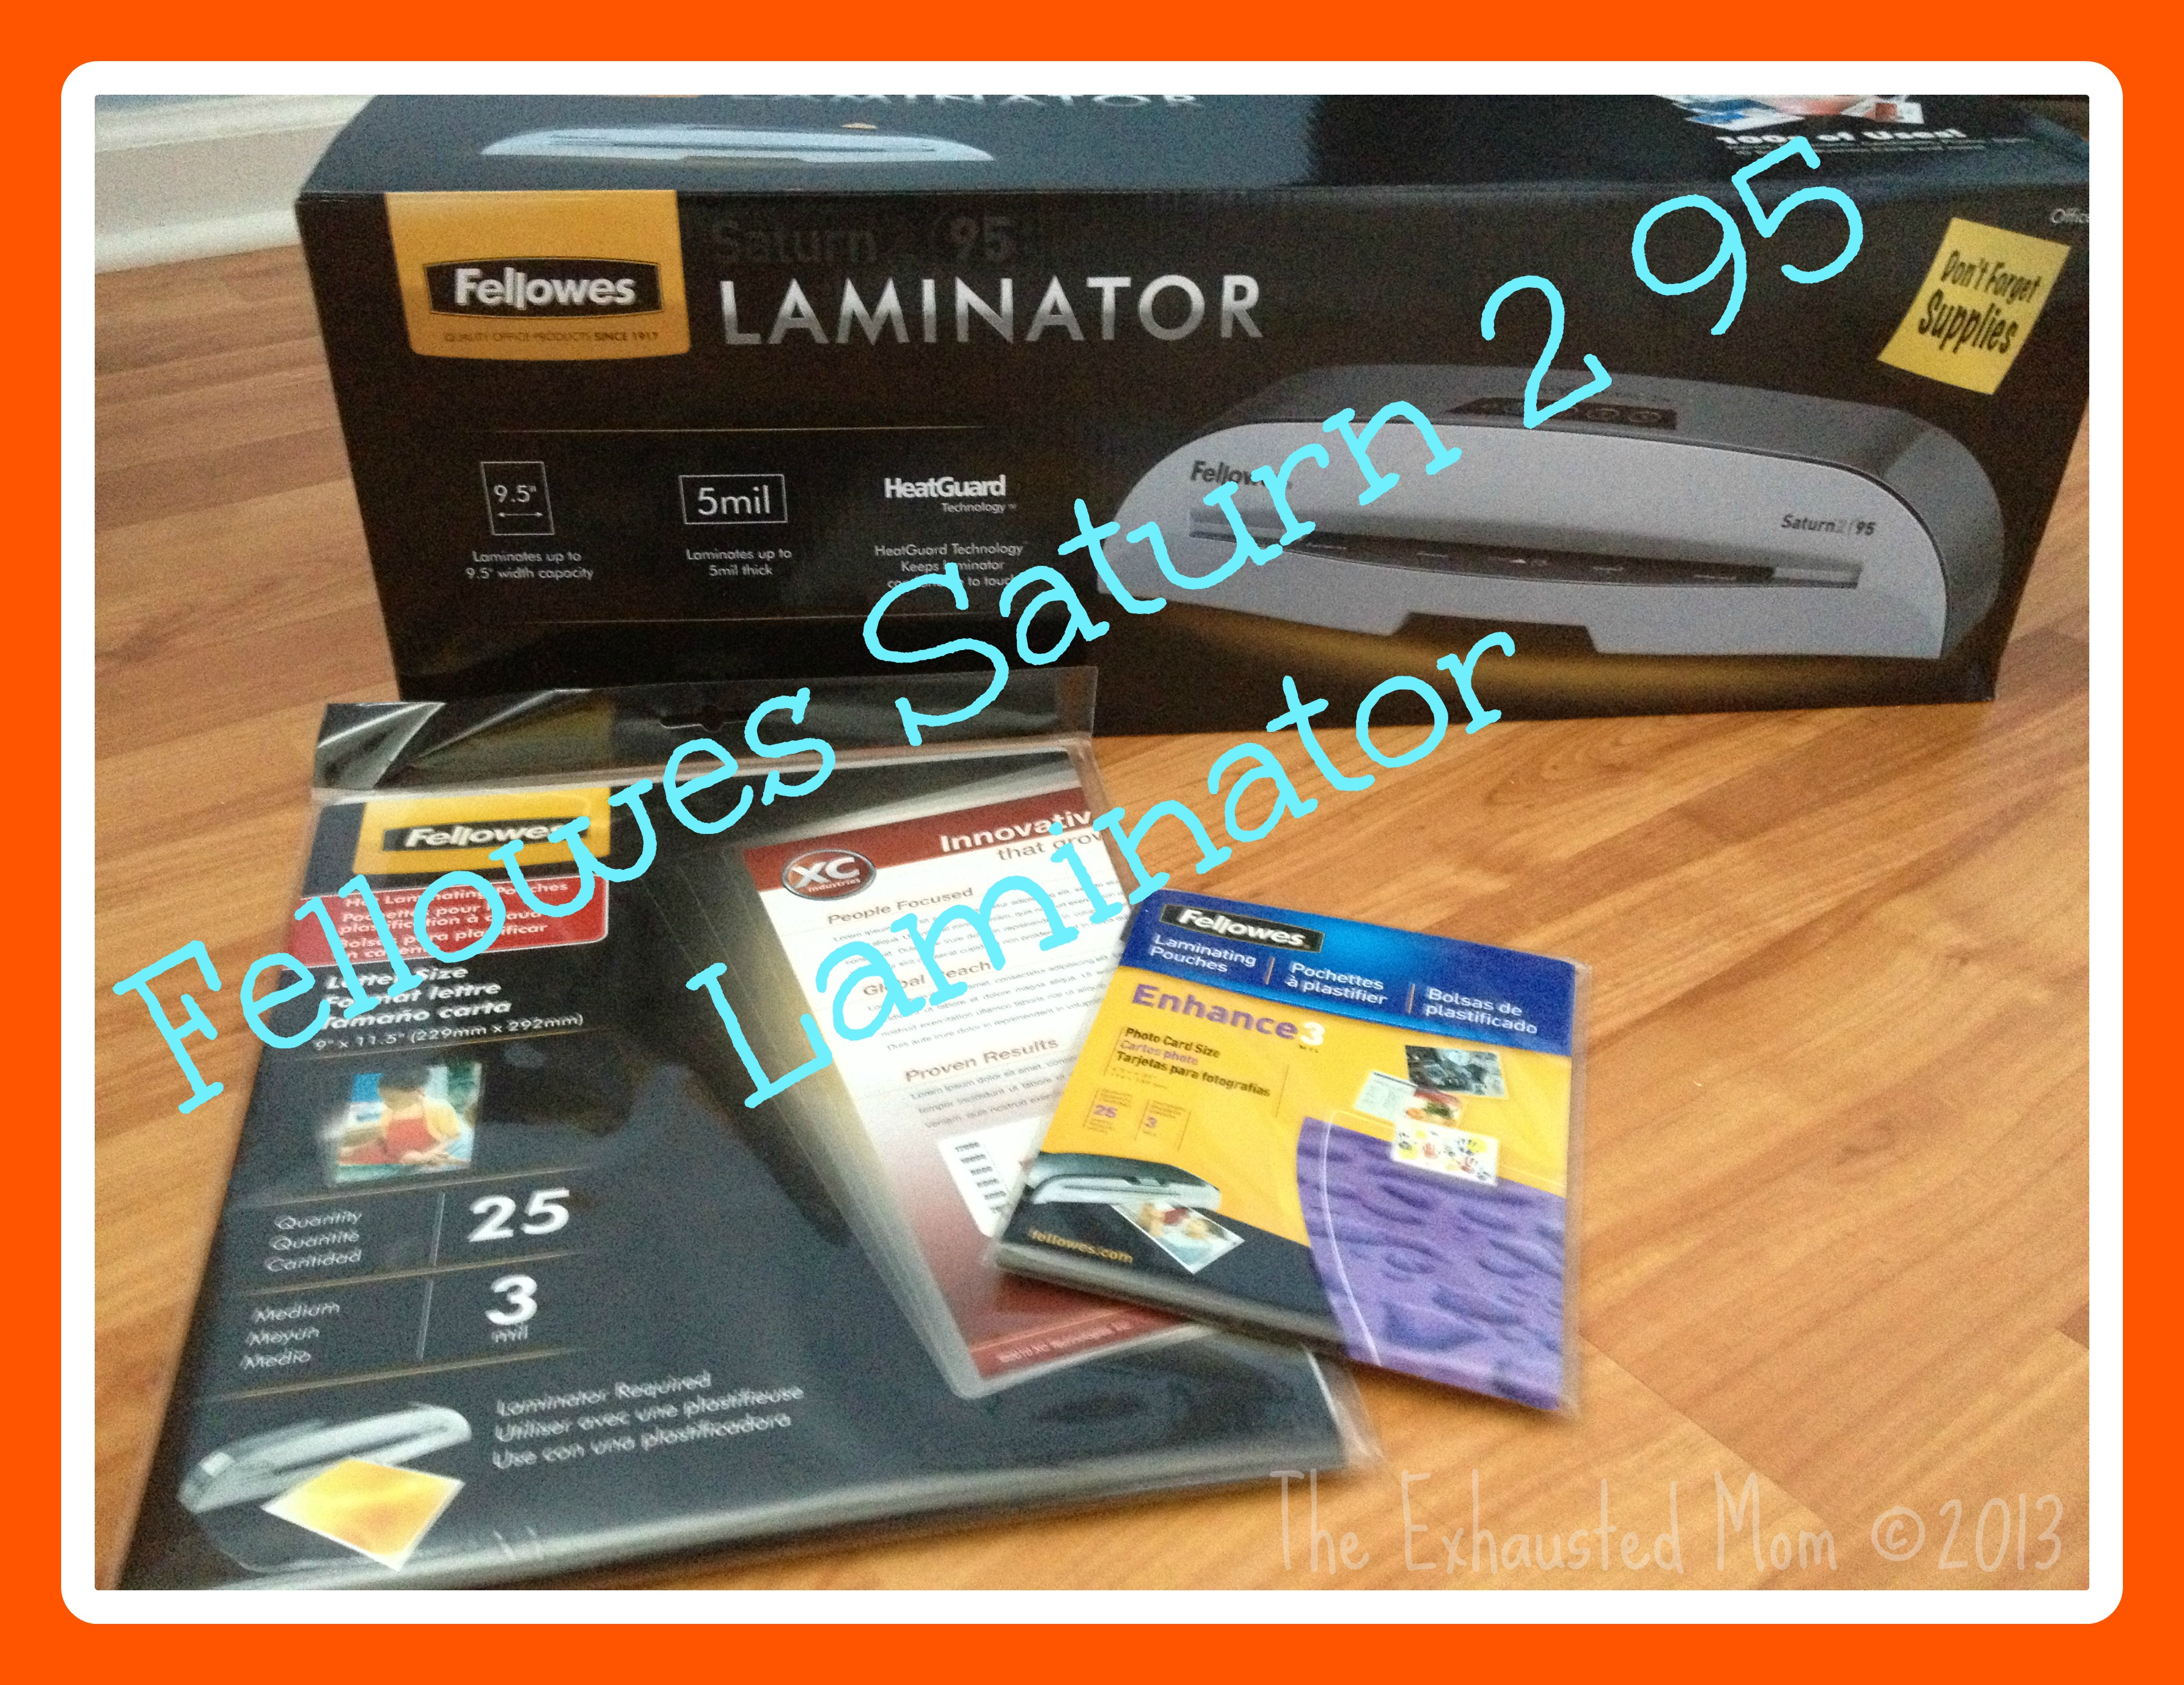 Back to School with Fellowes Saturn 2 95 Laminator {Giveaway}